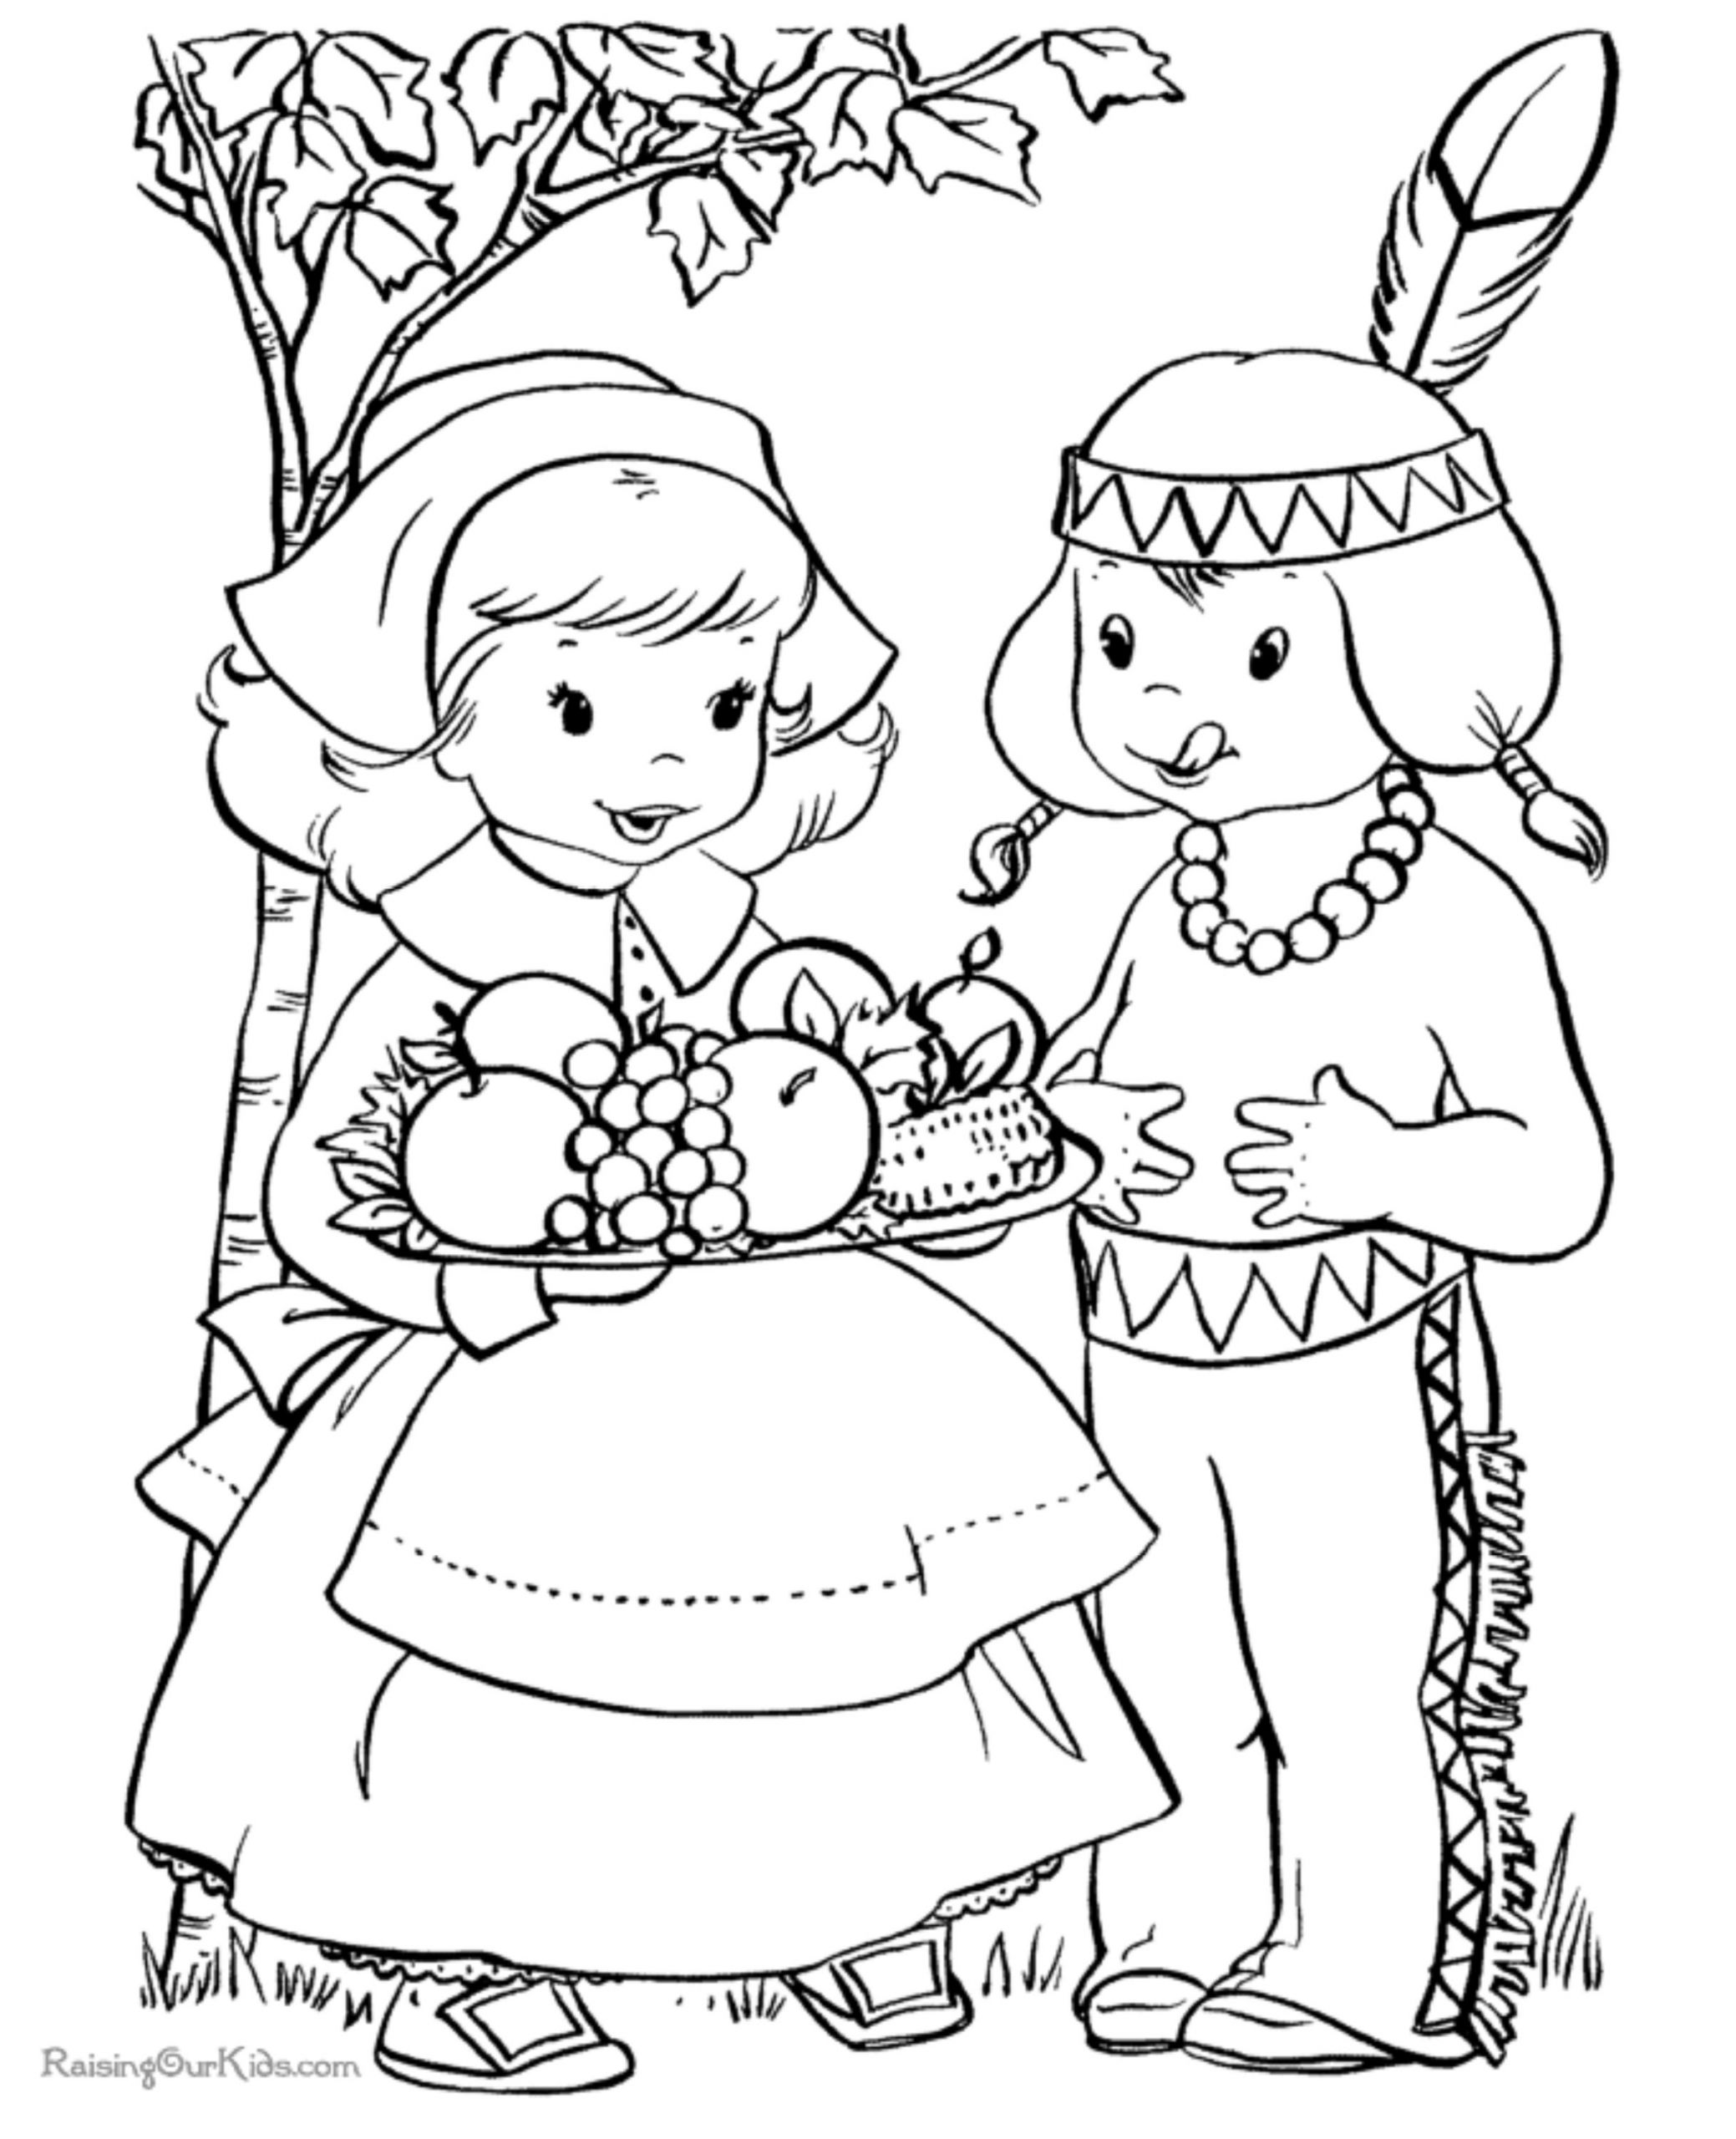 Thanksgiving Coloring Pages For Children  Kid's Coloring Pages Northern News